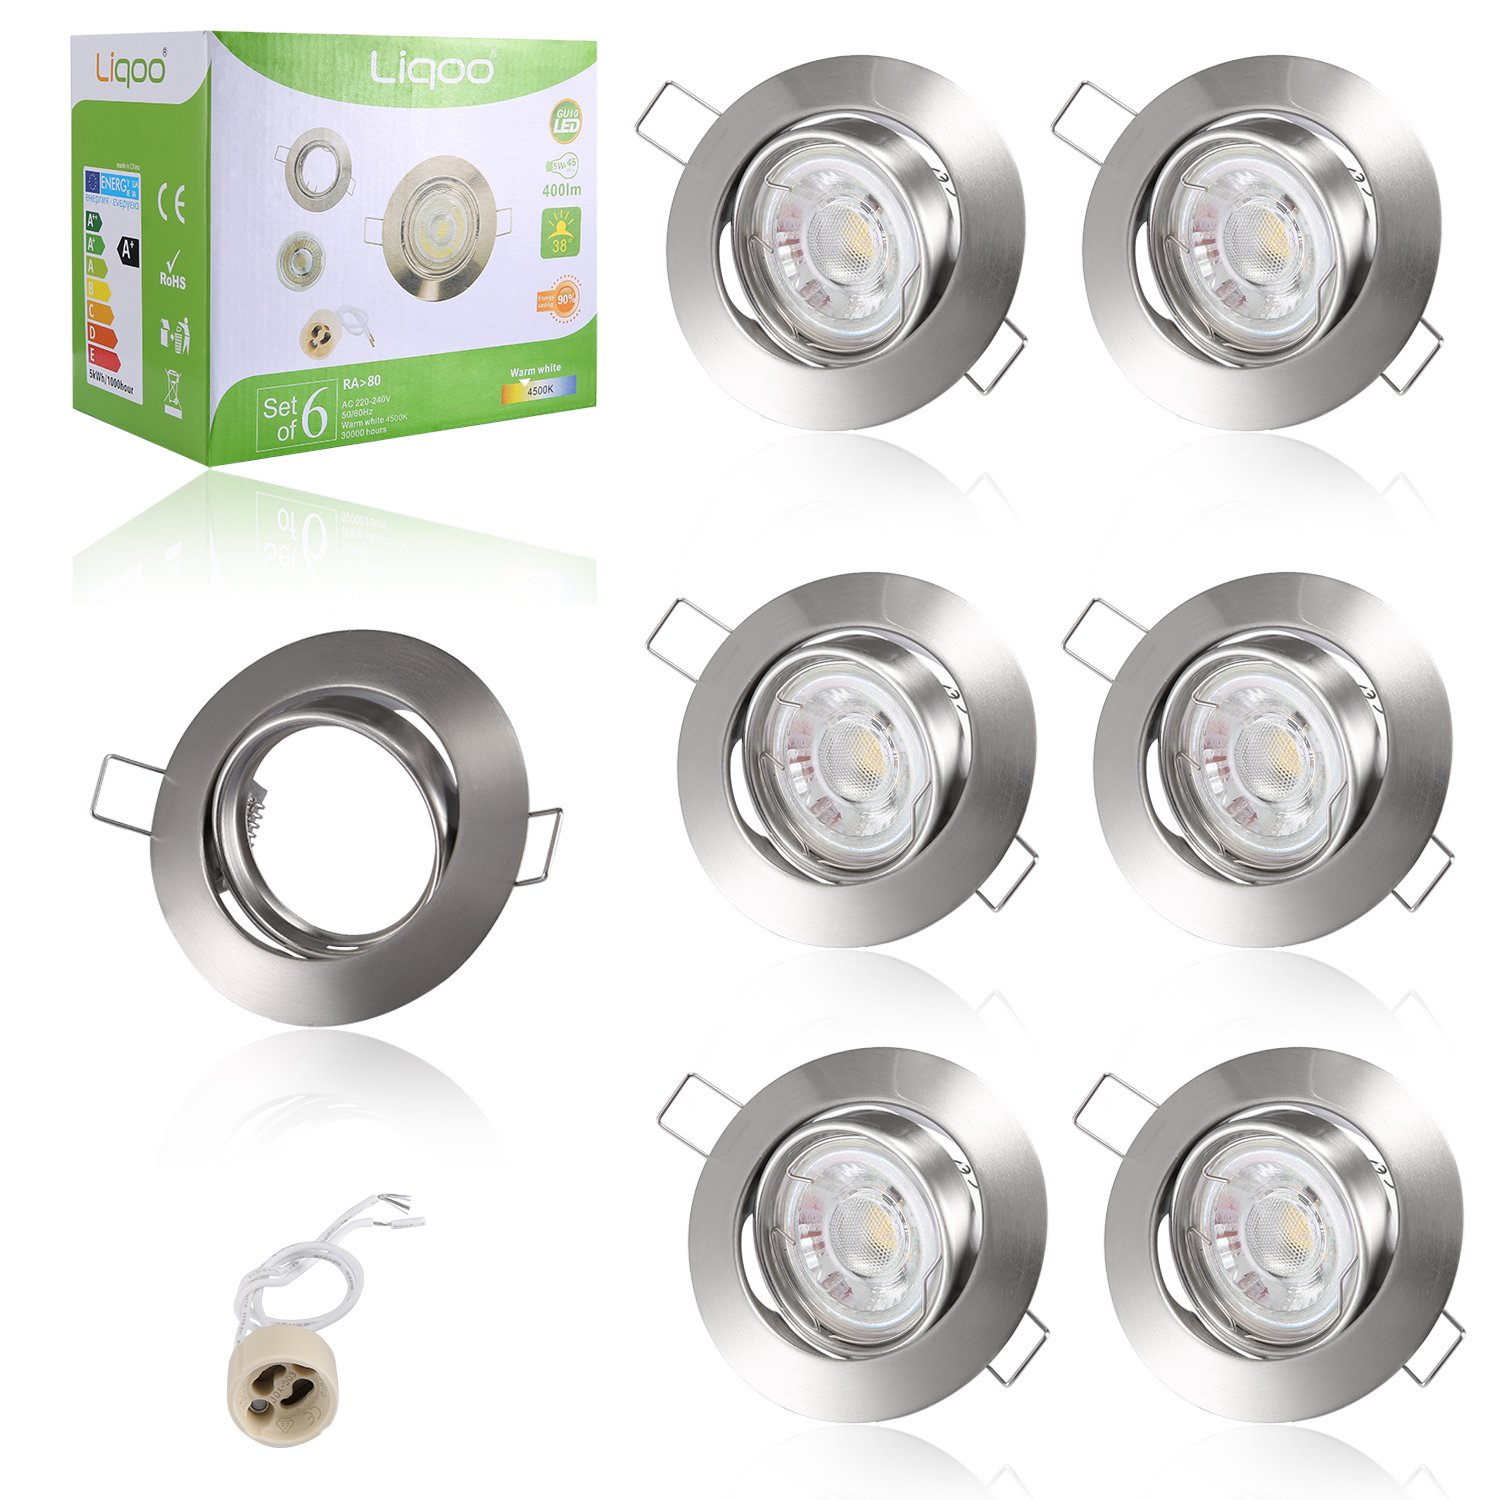 Liqoo 6 X Led Gu10 Recessed Ceiling Lights Spotlights Downlights 5w Brushed Satin Chrome Light Pull Cord Switch Amazoncouk Lighting White 4000 4500k 420lumen Cob 45w Incandescent Bulb Equivalent Ip20 Protection For